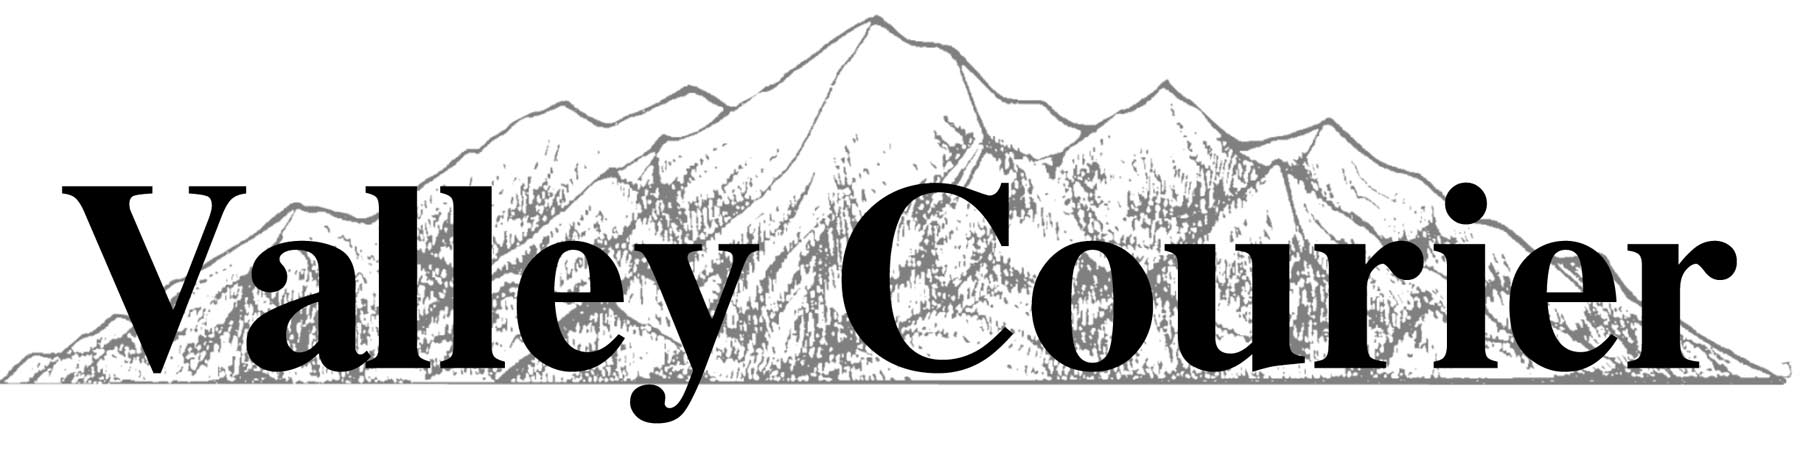 Headwaters Hoedown and Cornhole Throwdown - Valley Courier